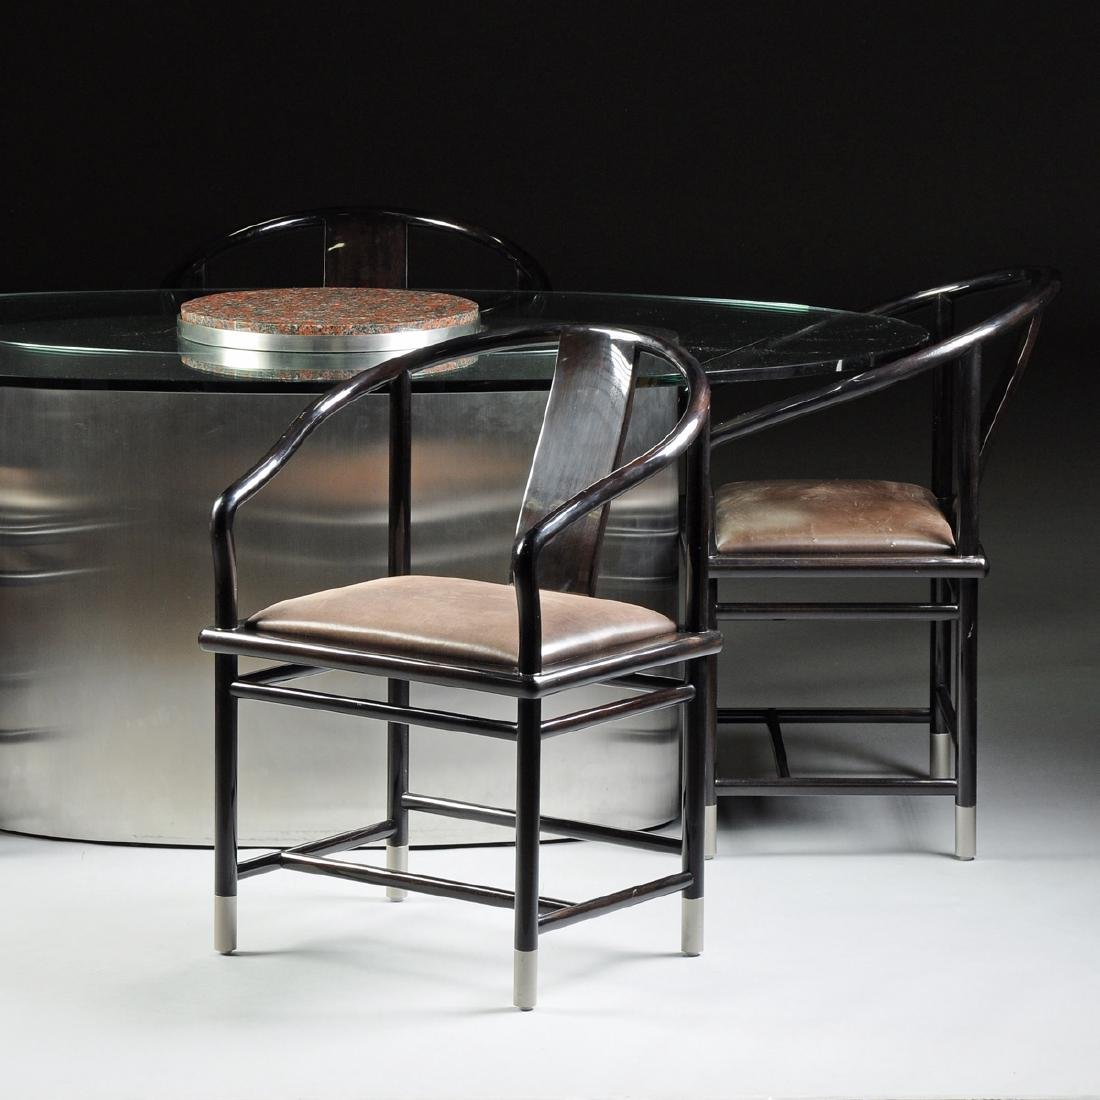 A CONTEMPORARY GLASS TOPPED STAINLESS STEEL AND GRANITE - 4